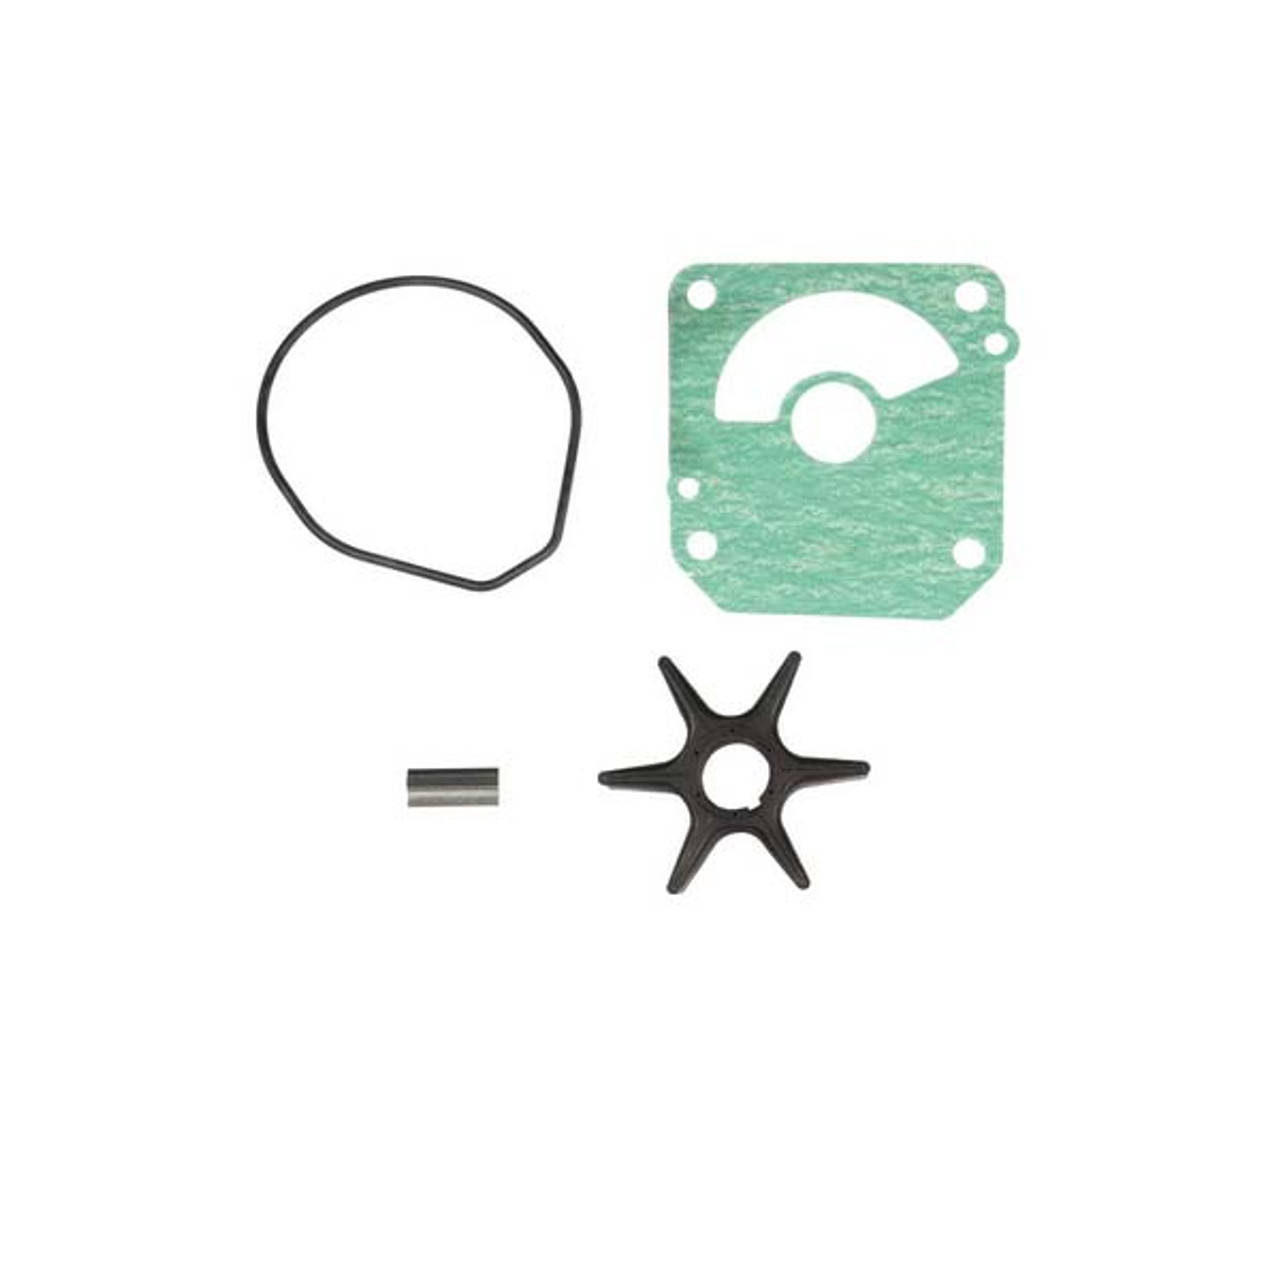 Sierra 18-3283 Water Pump Service Kit Replaces06192-ZW1-000